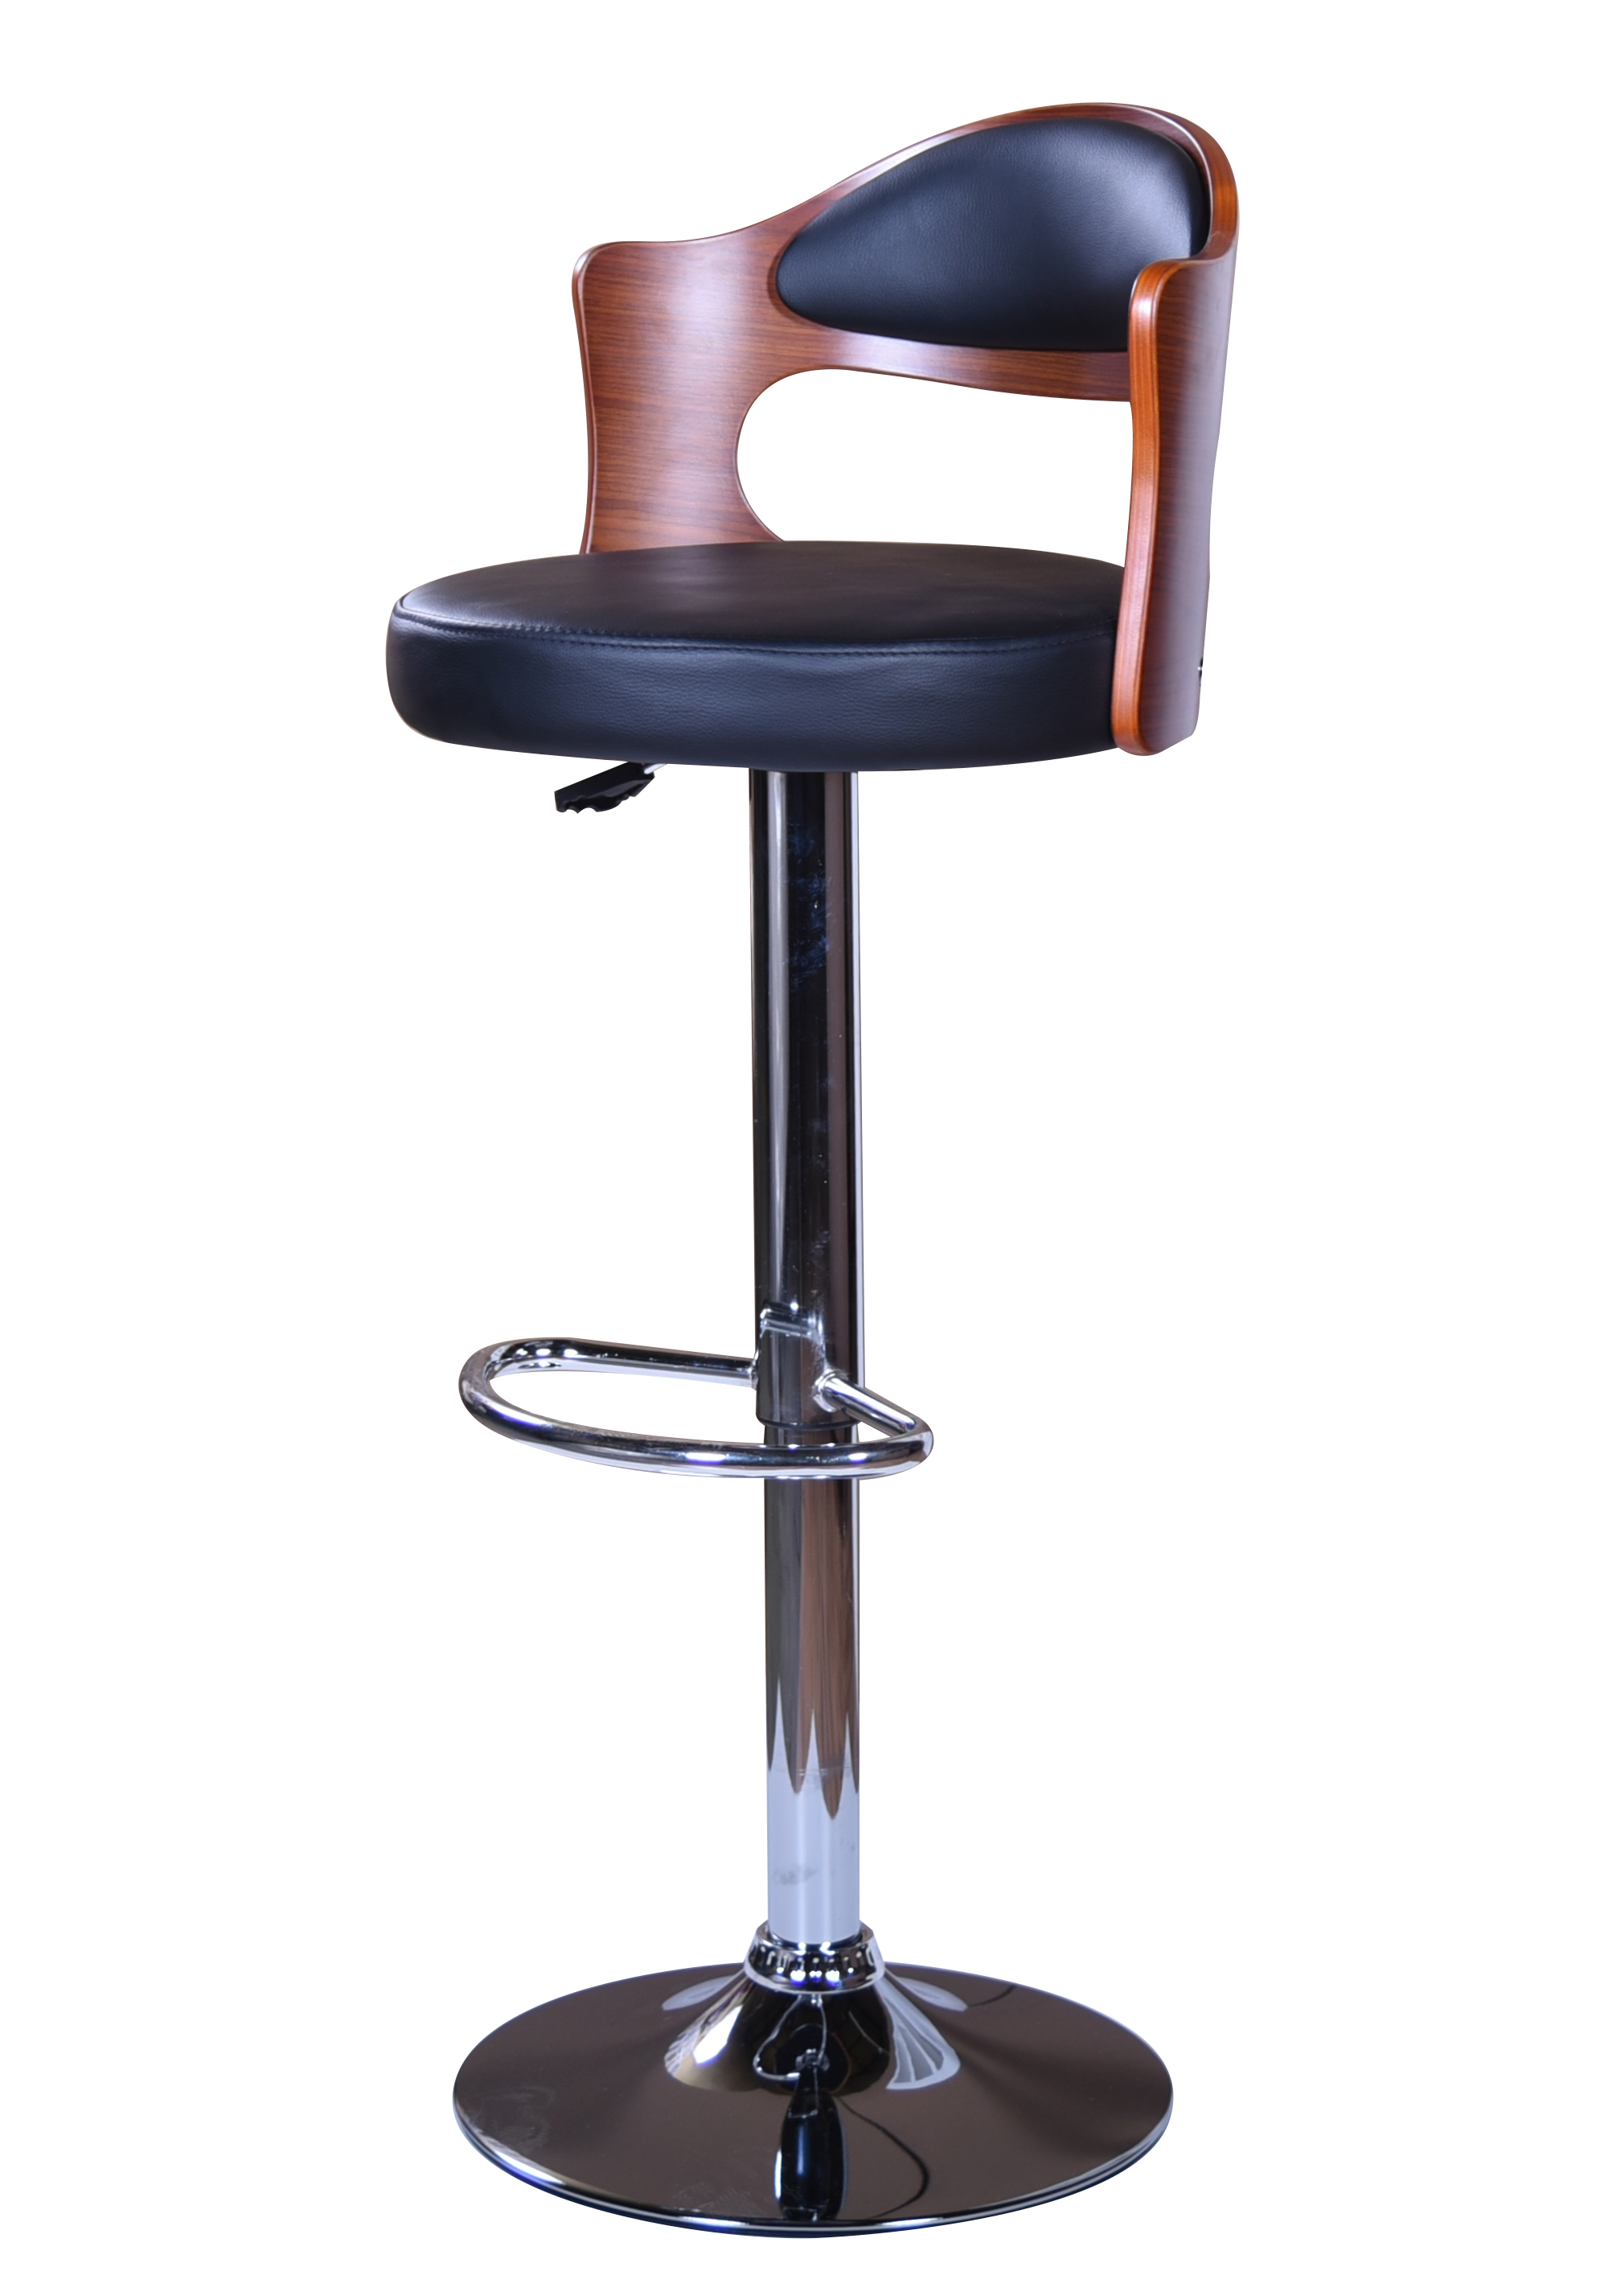 Bar Stools for sale Cheapest on Bar Stools Sameday  : Y 25 Bar Stool side from www.discountdecor.co.za size 1990 x 2855 jpeg 752kB